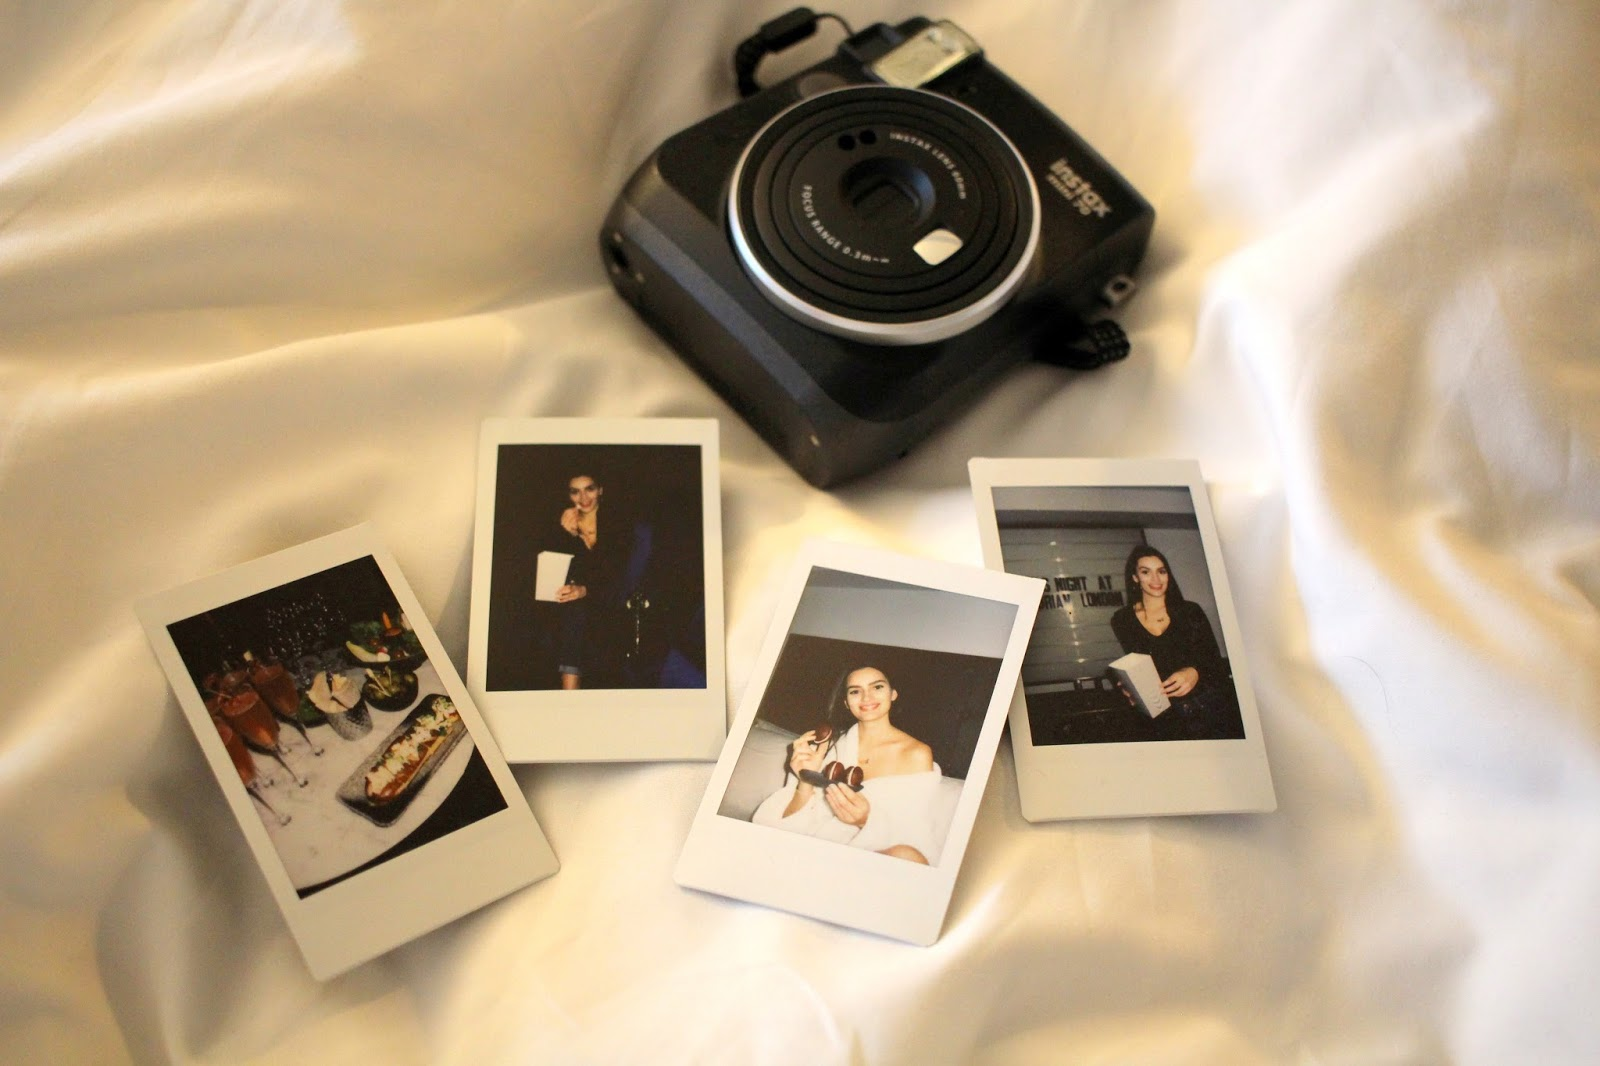 instax polaroid photos peexo blog